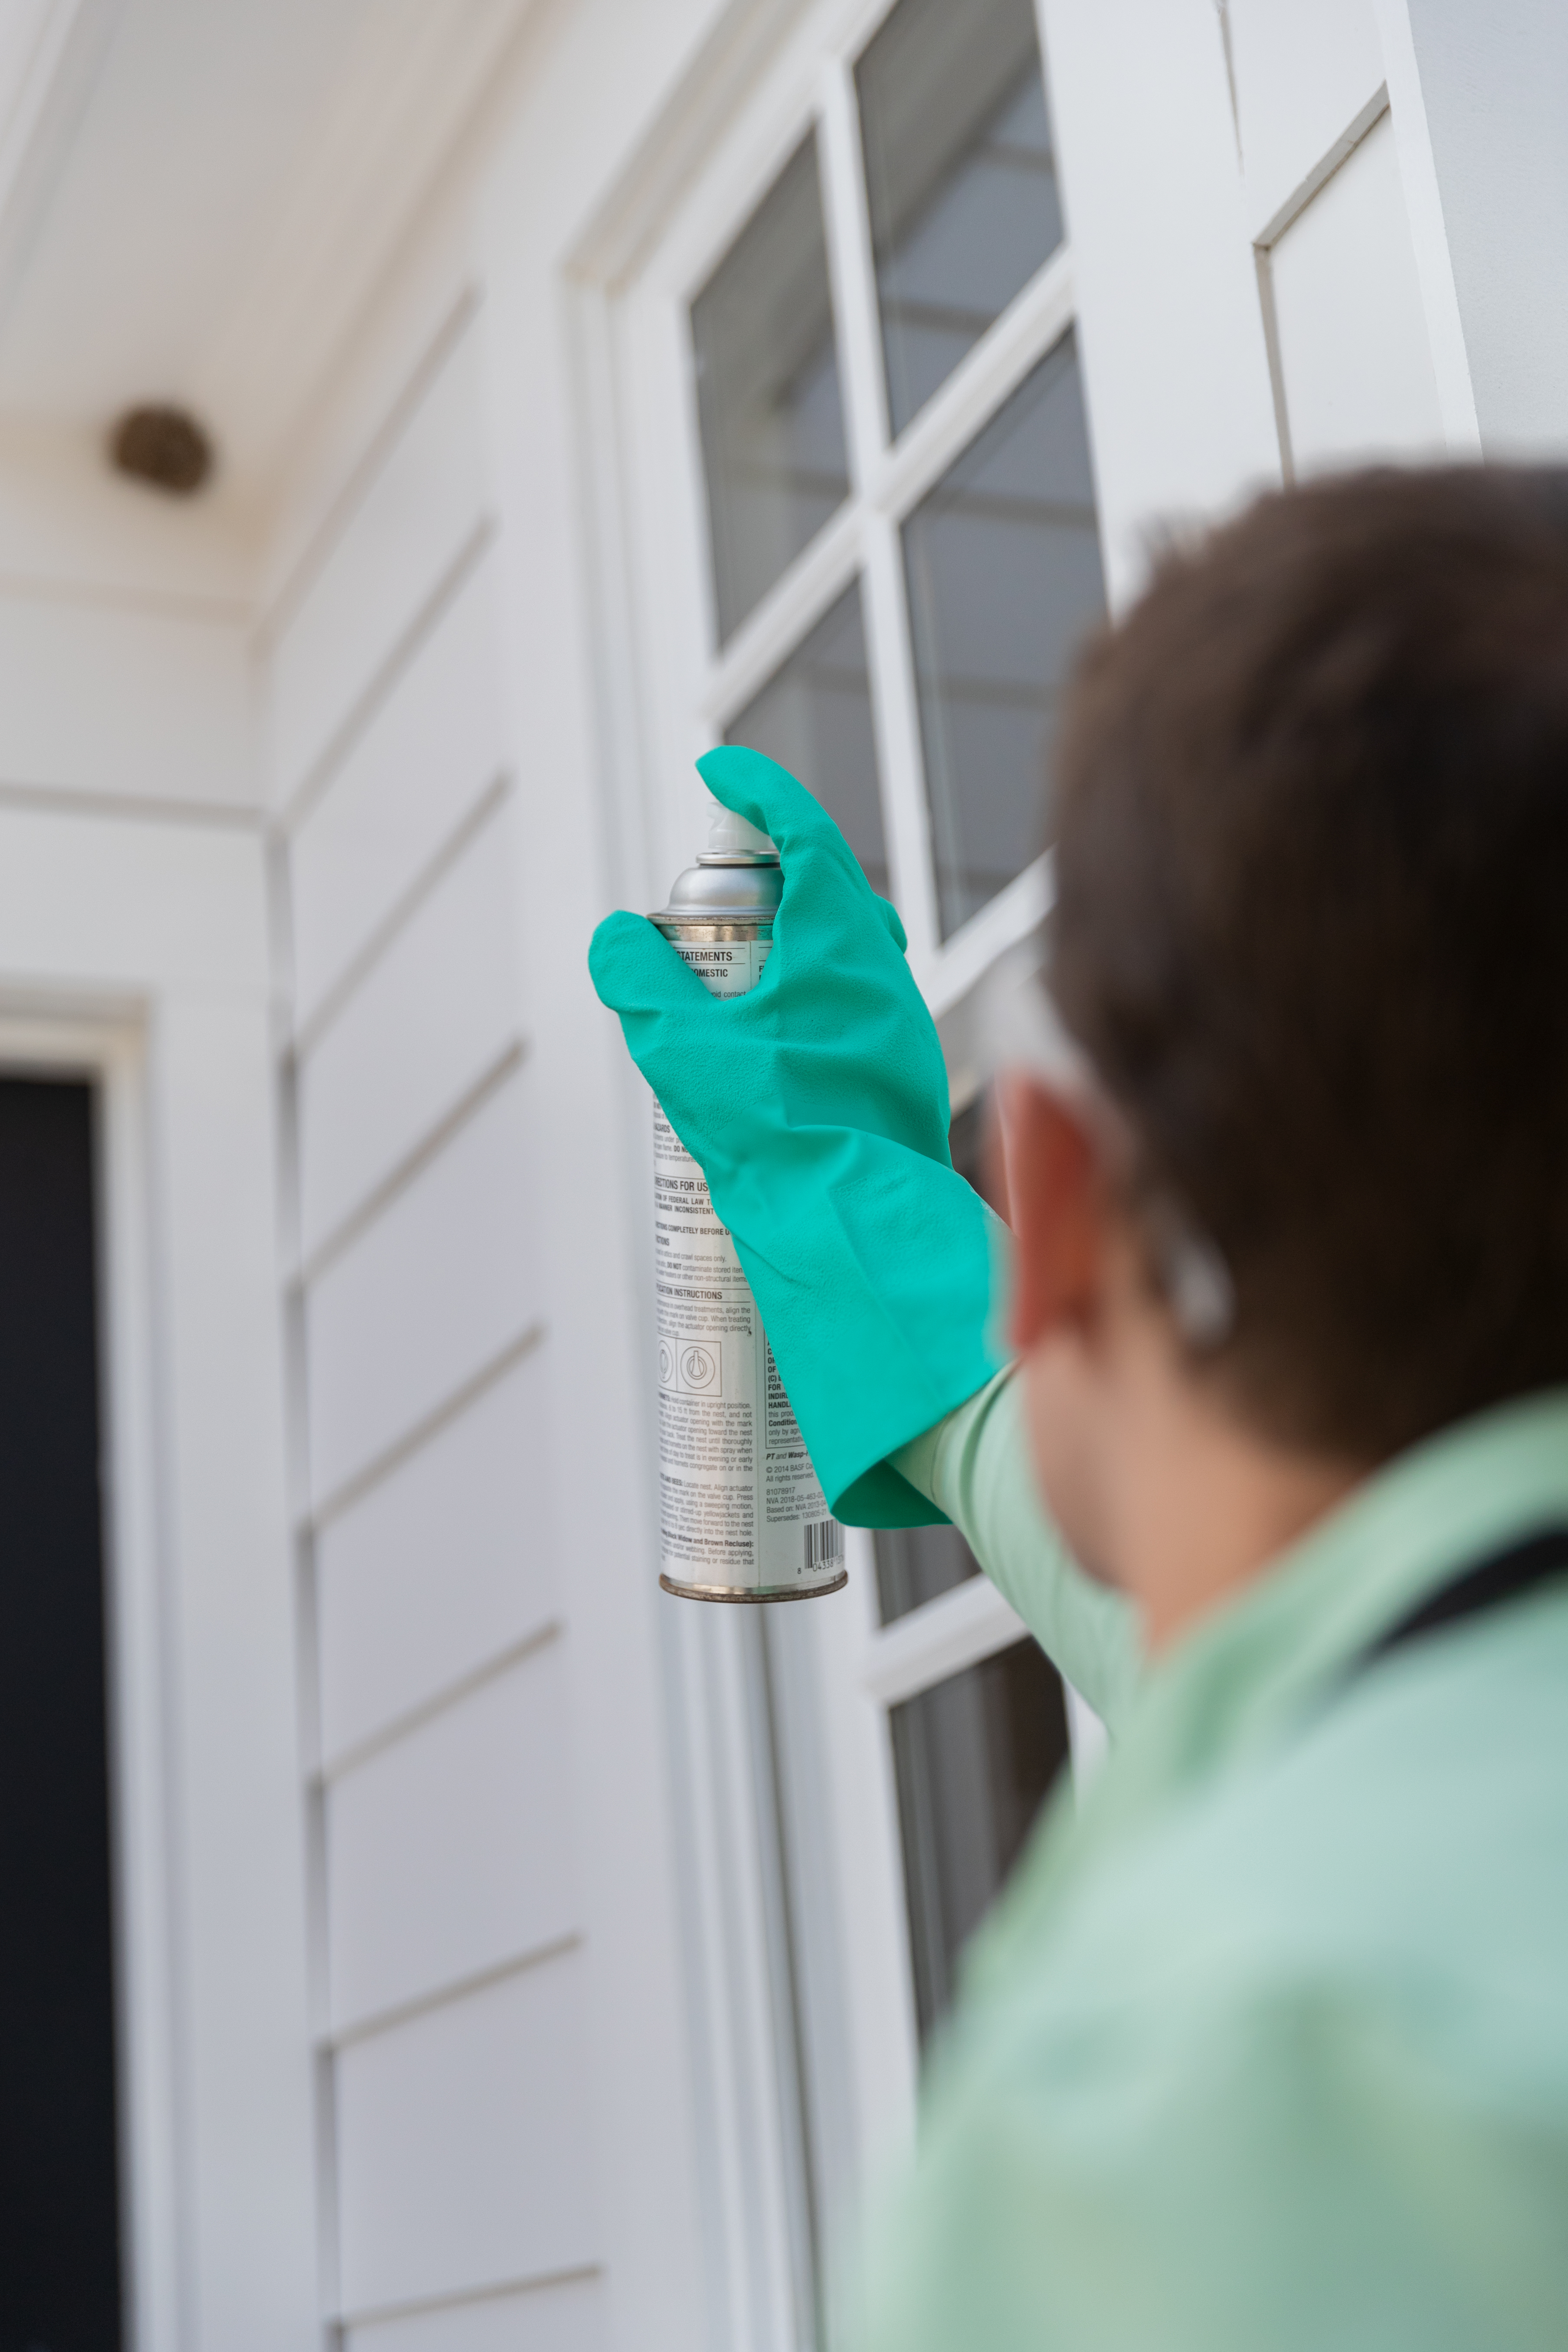 A pest control specialist wearing a green shirt and green gloves sprays pest control solution in the direction of an insect nest on a white house.